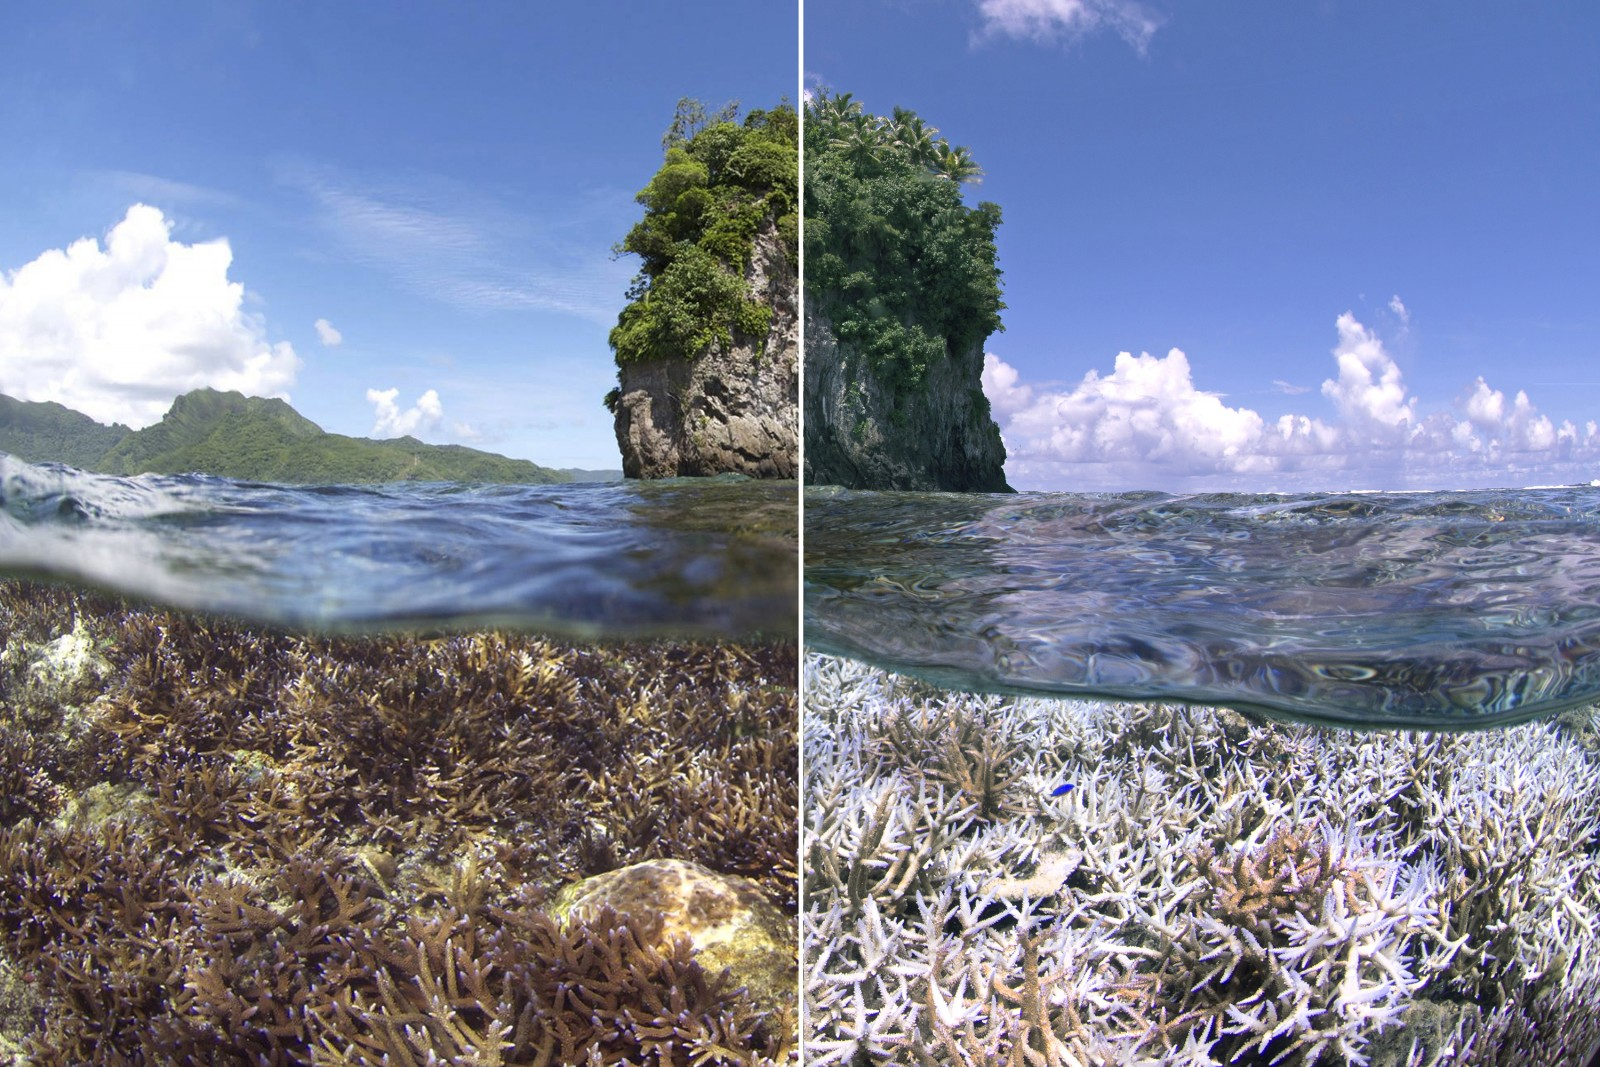 Bleaching in American Samoa during the last El Niño